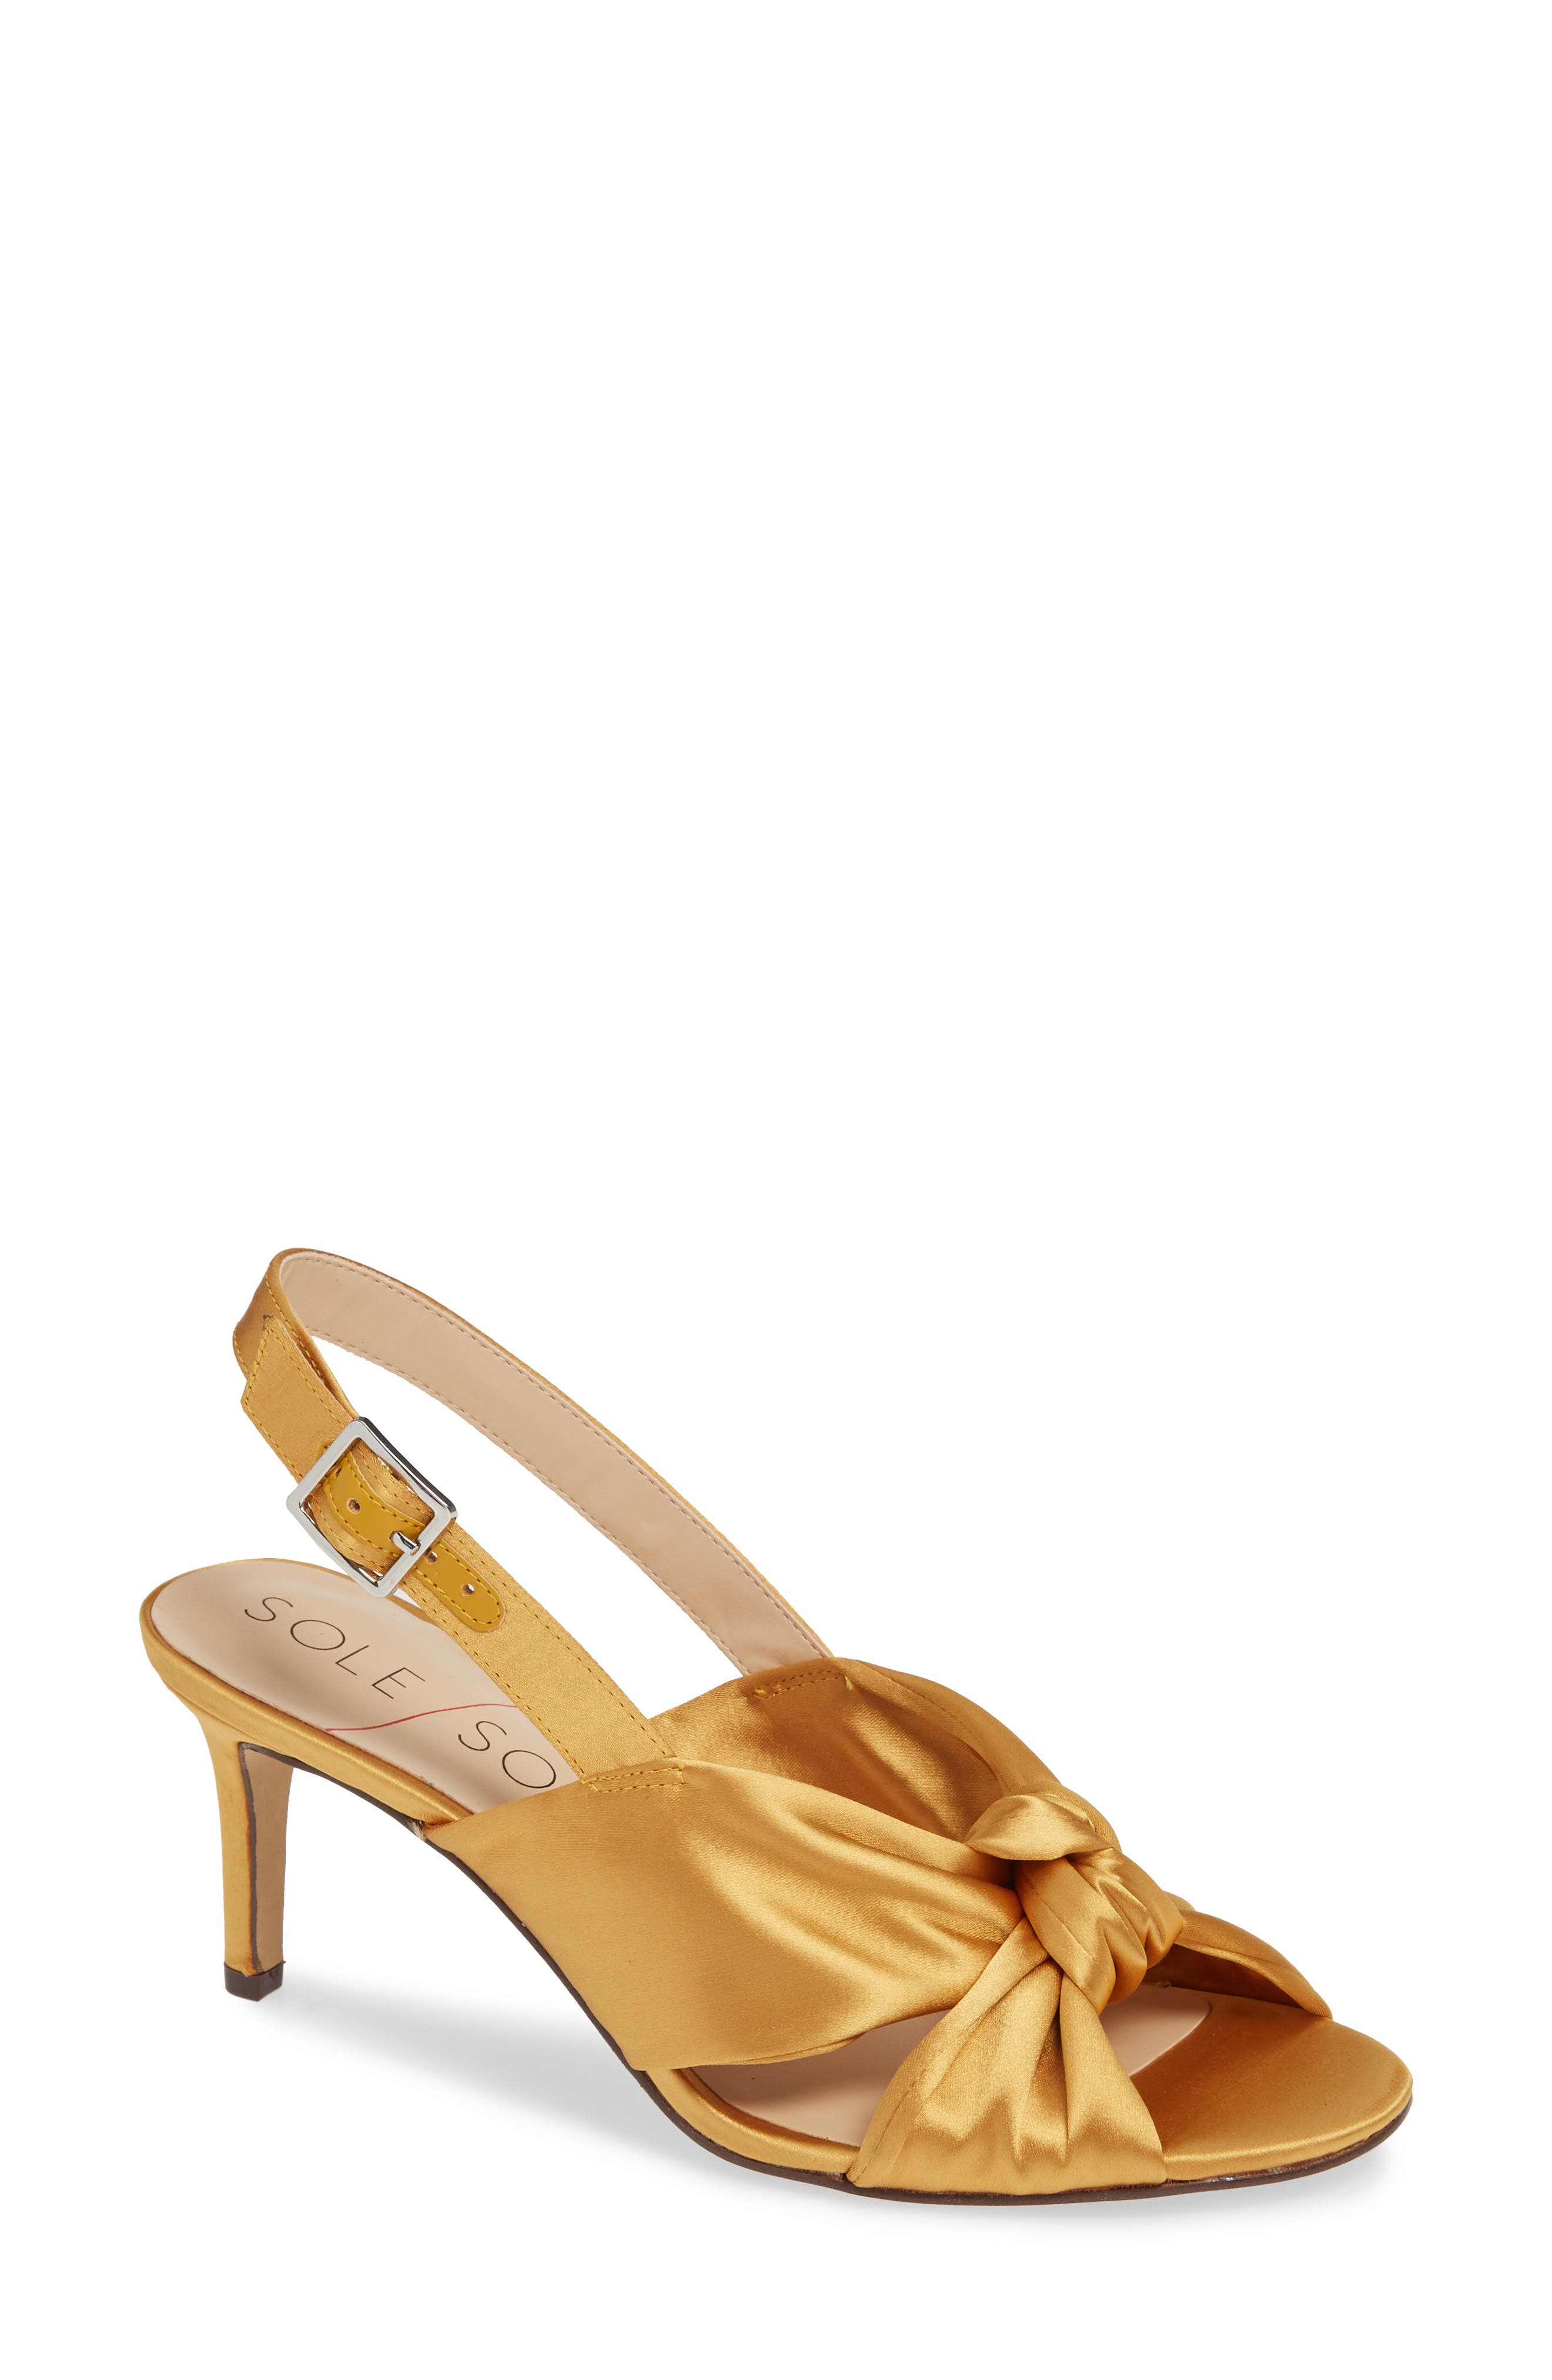 Sole Society Genneene Knotted Slingback Sandal- Metallic